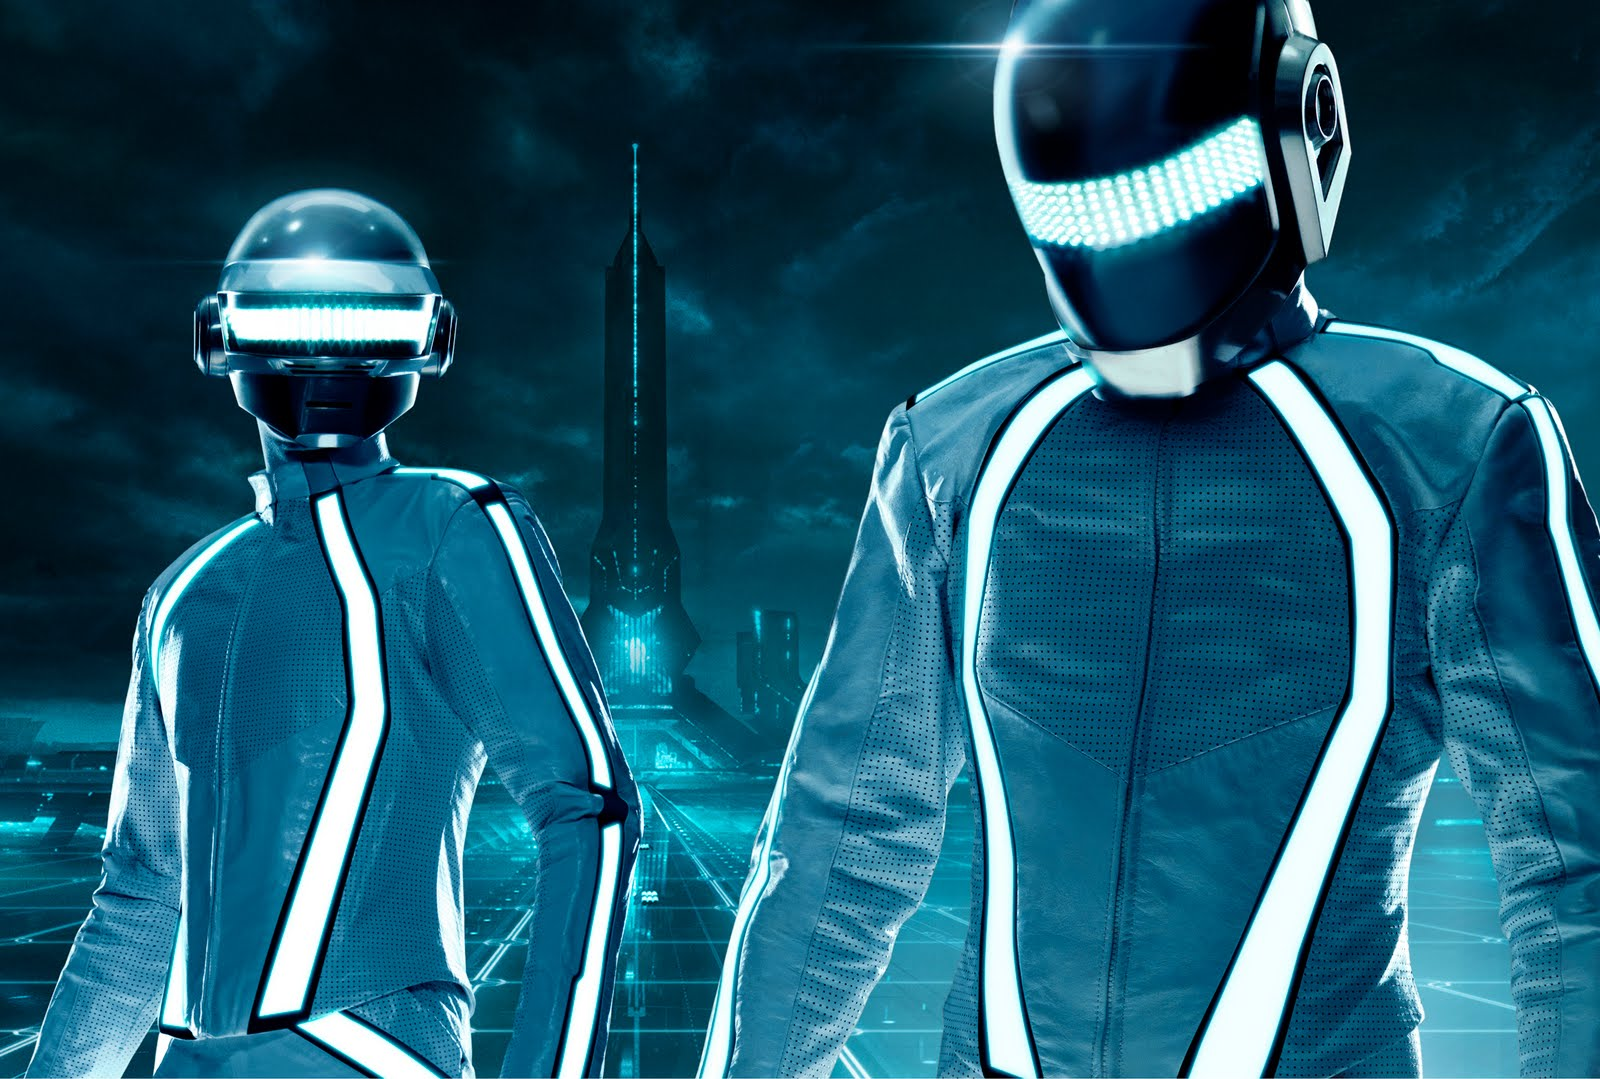 Daft Punk in Tron Legacy attire.